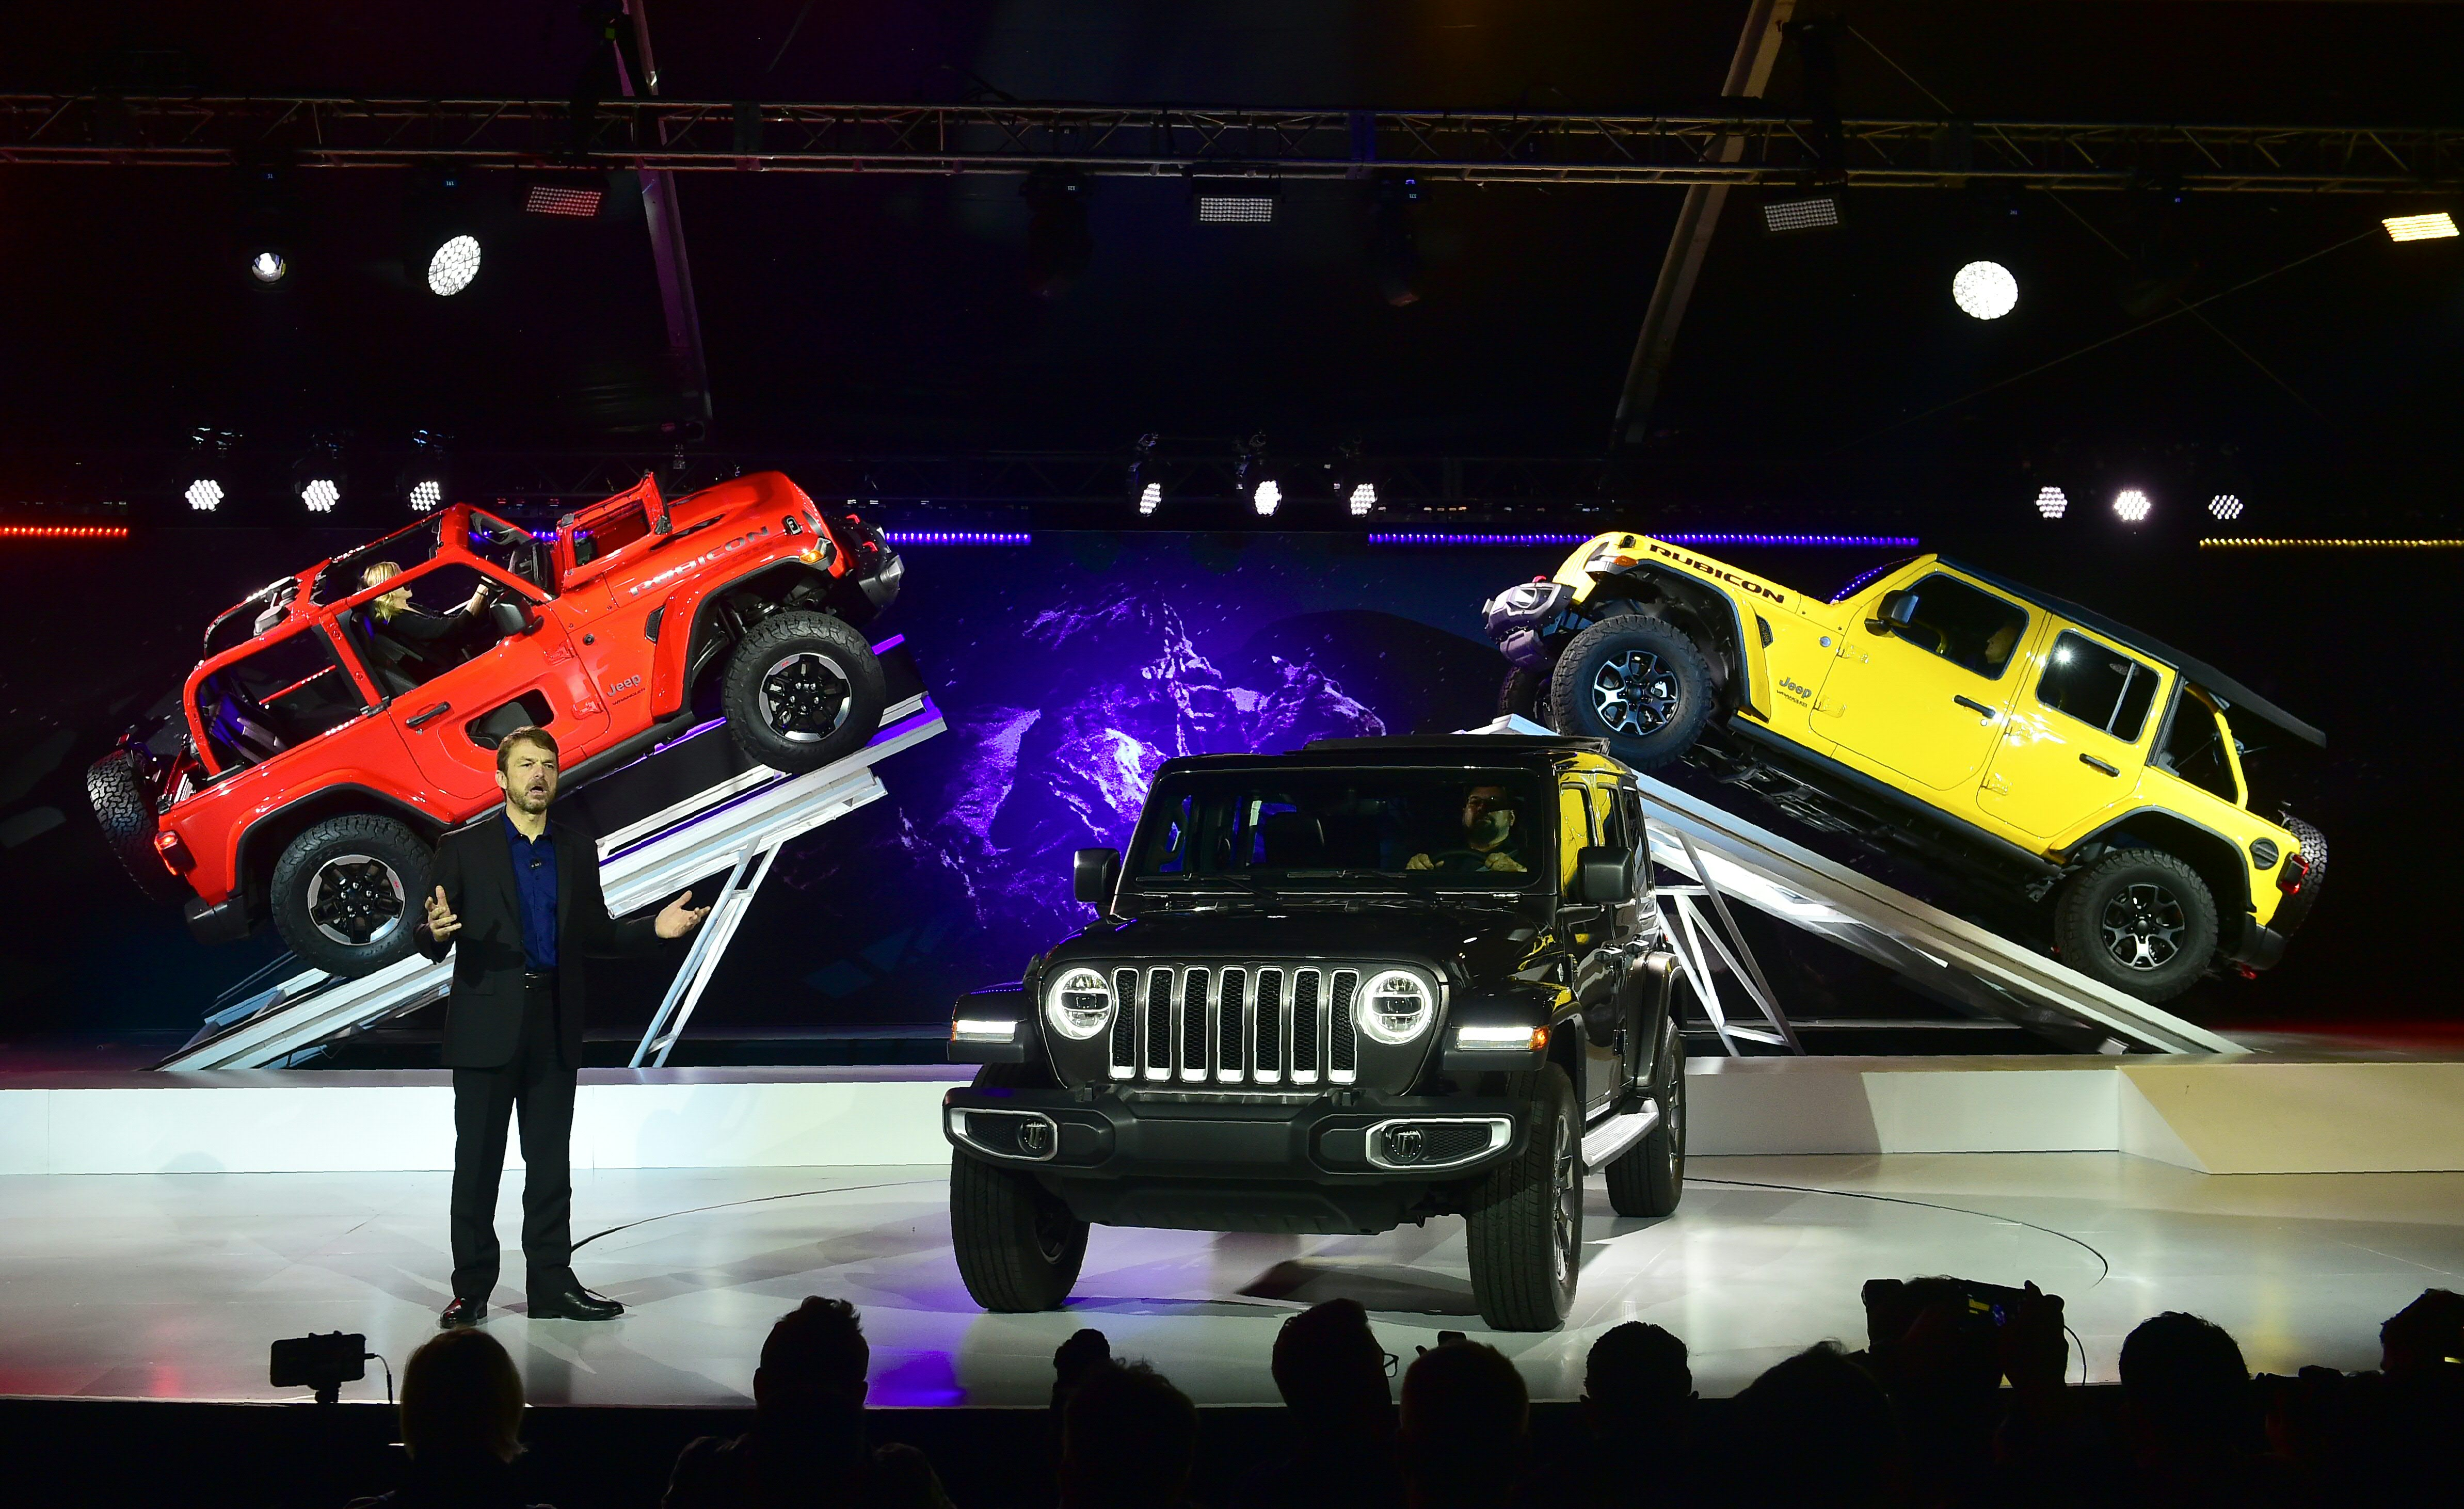 Mike Manley, Head of Jeep, speaks as the new Jeep Wranglers and Jeep Wrangler Sahara